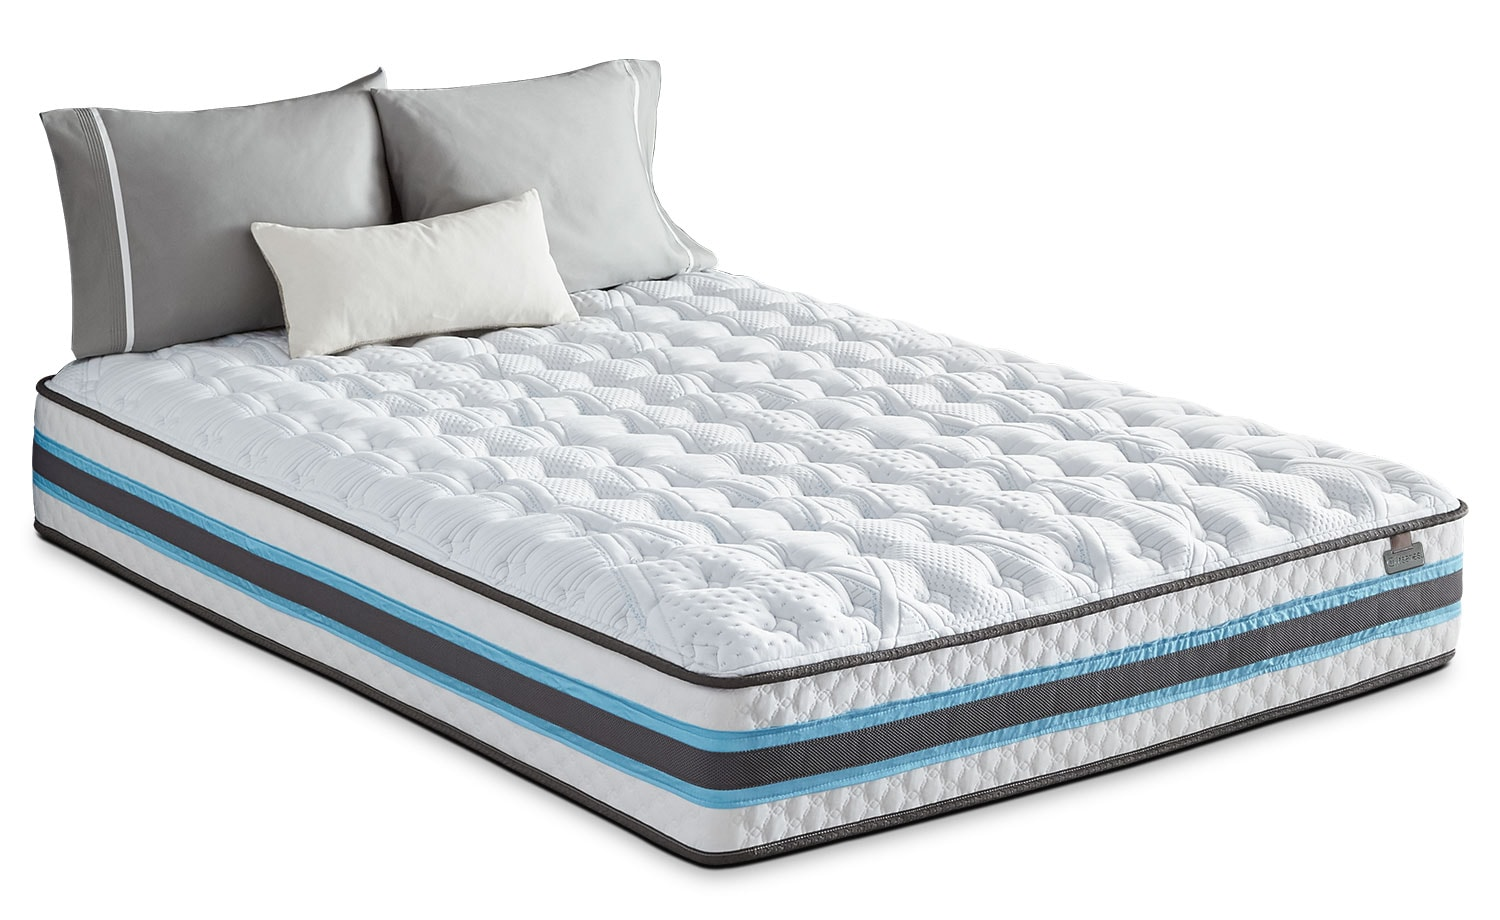 Serta iSeries® Atmosphere Tight-Top Firm King Mattress